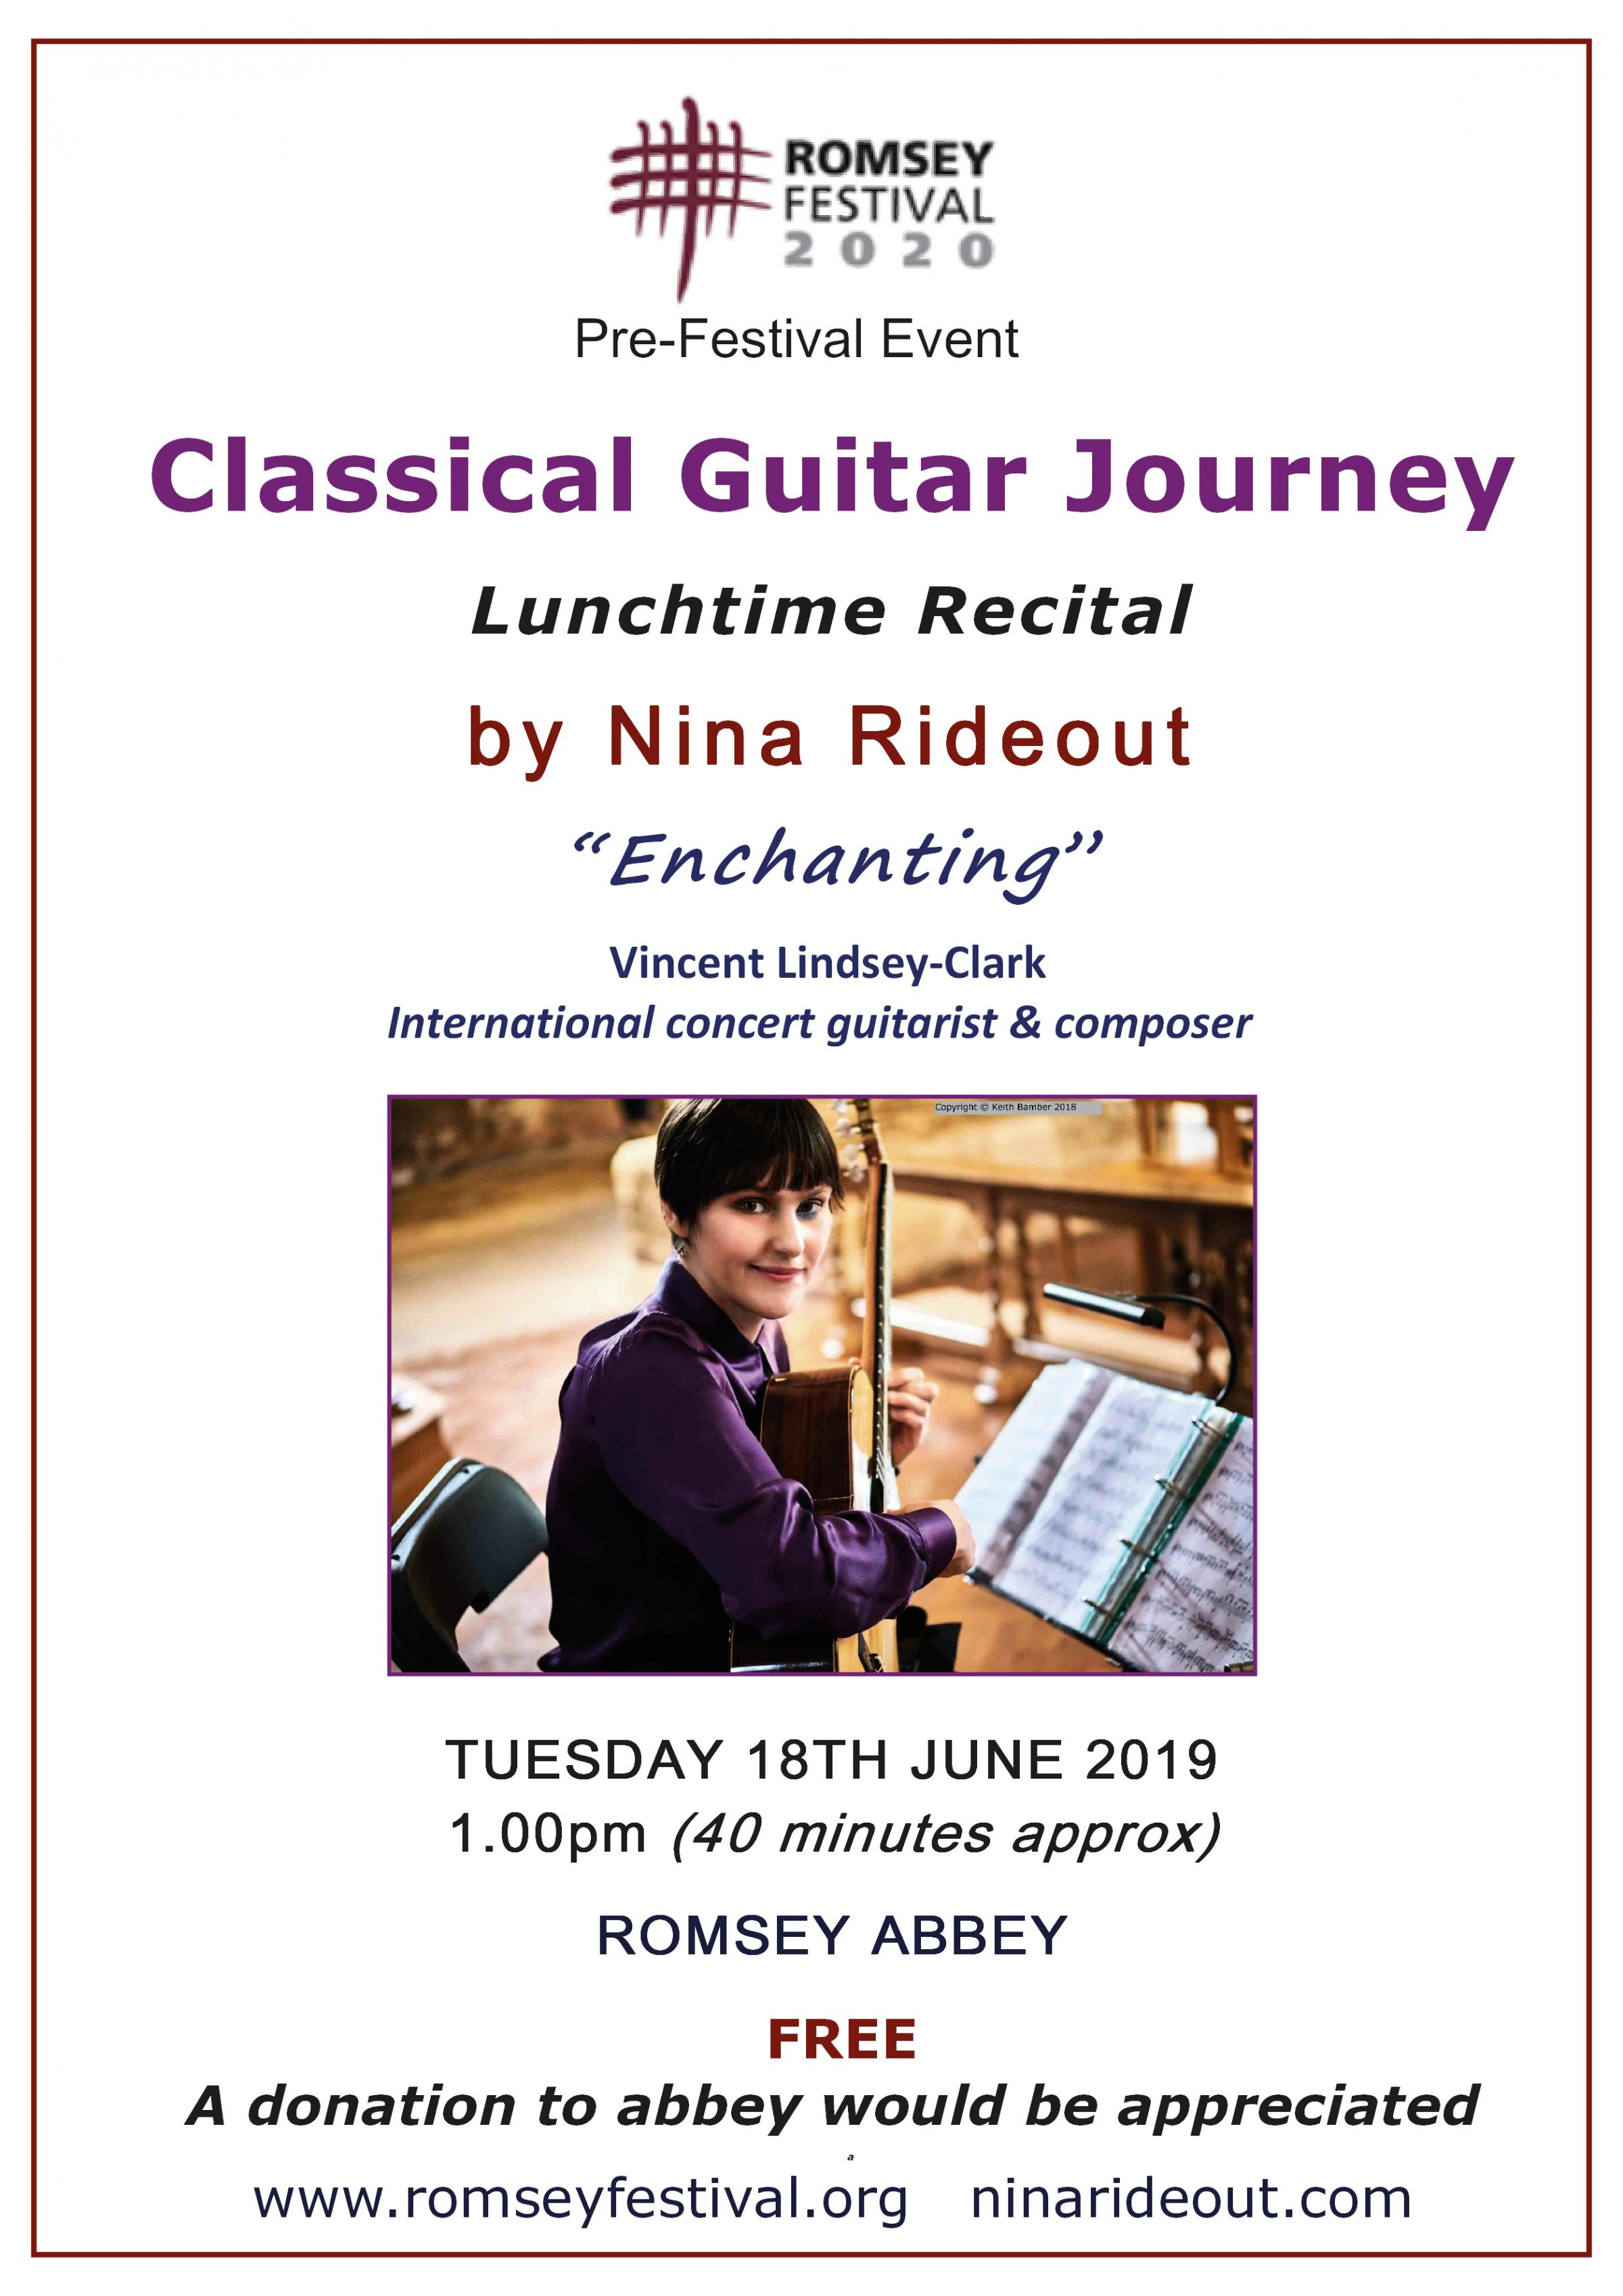 Classical Guitar Journey - lunchtime recital